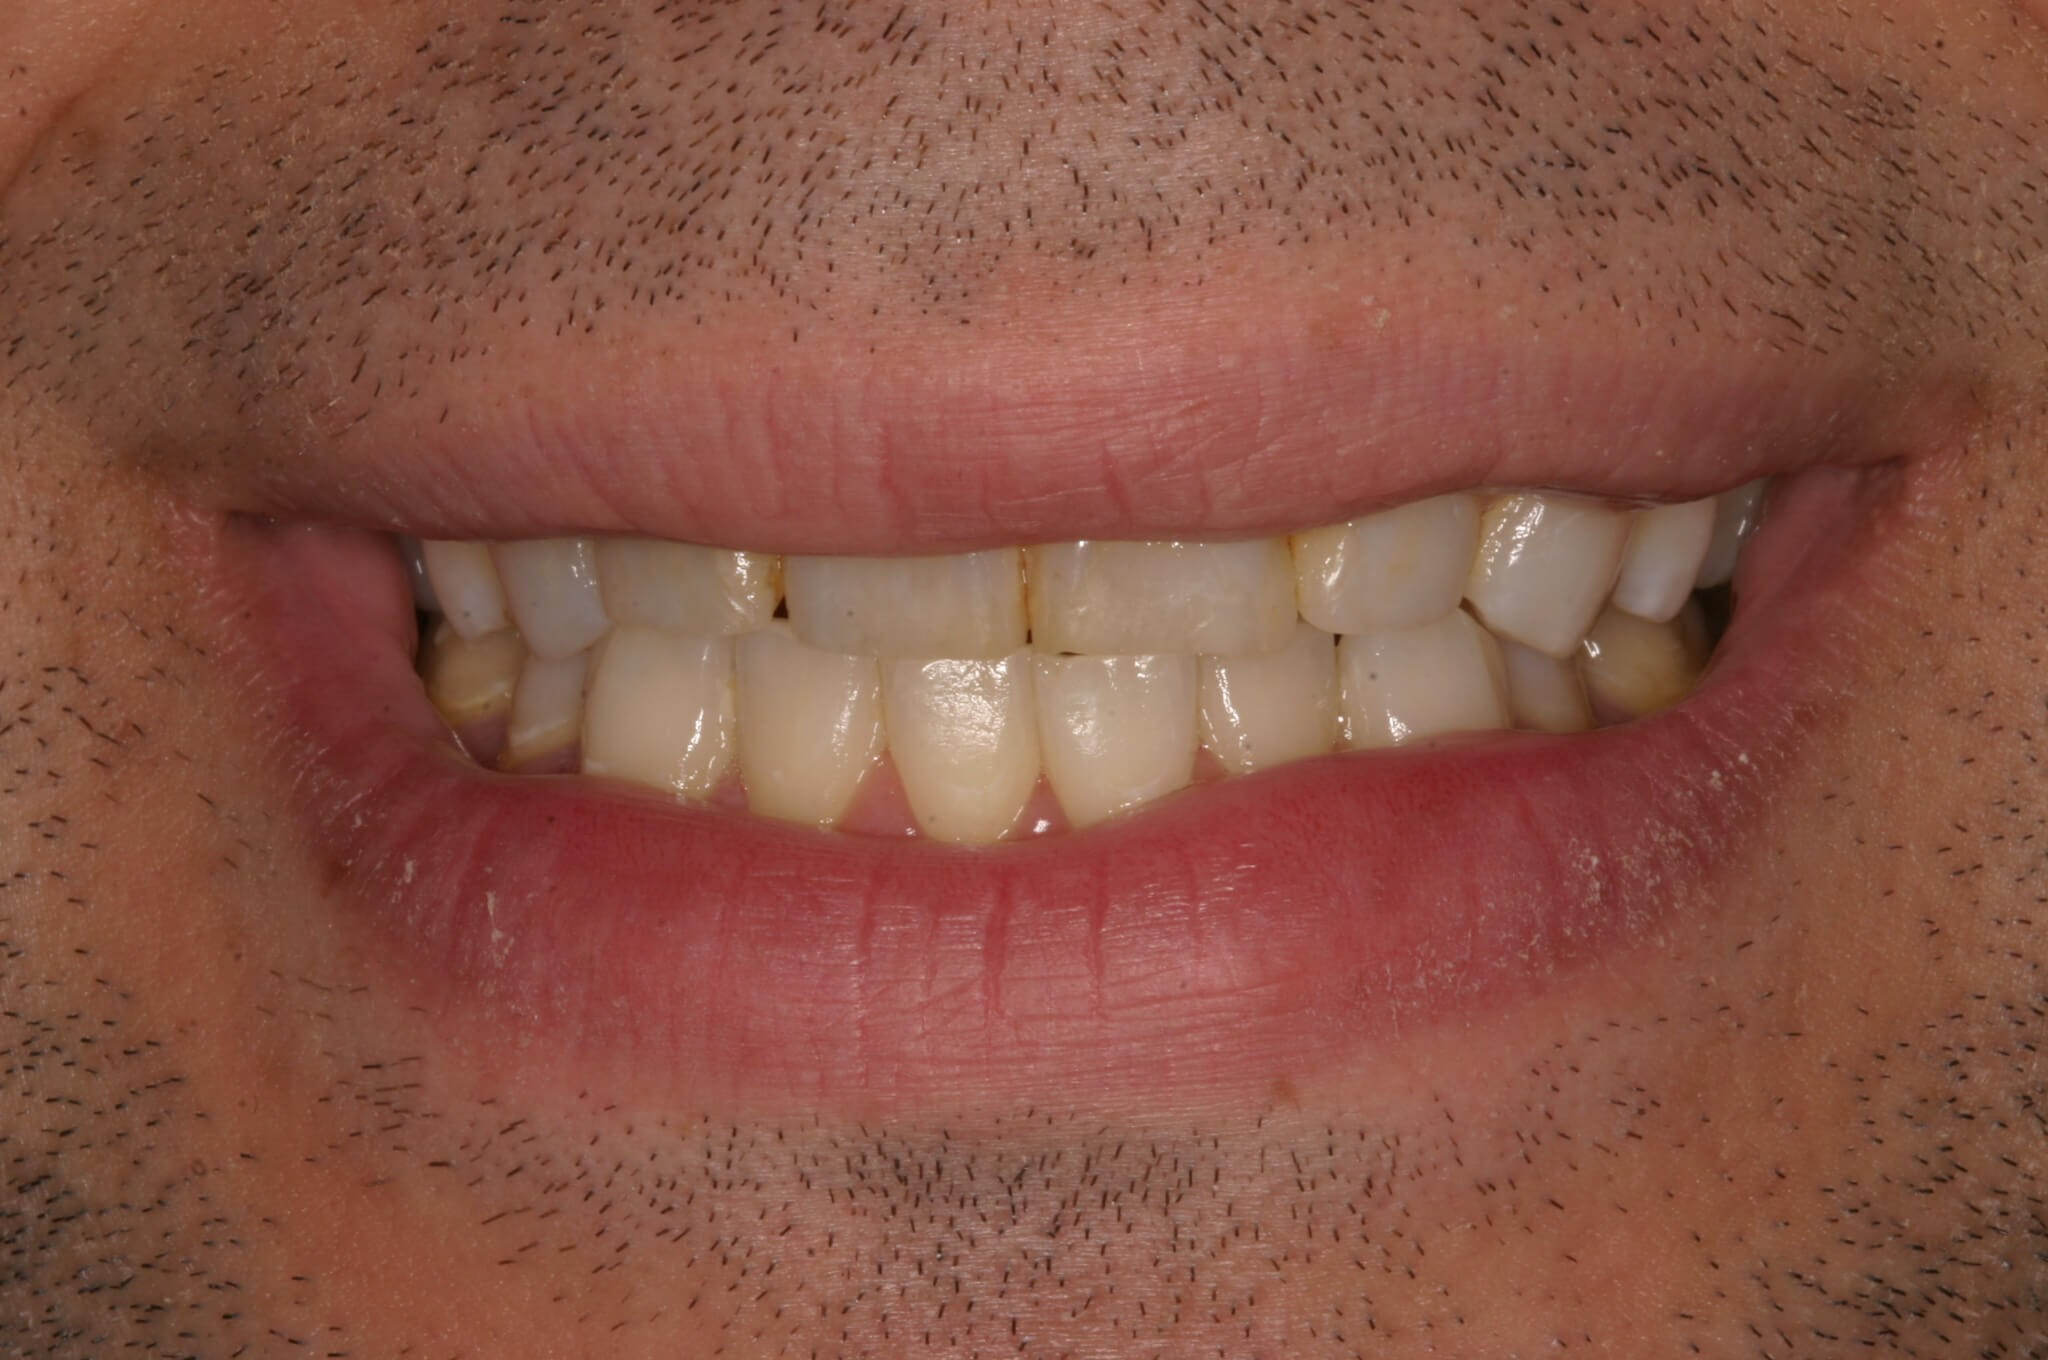 Worn Teeth to Great Smile! Before